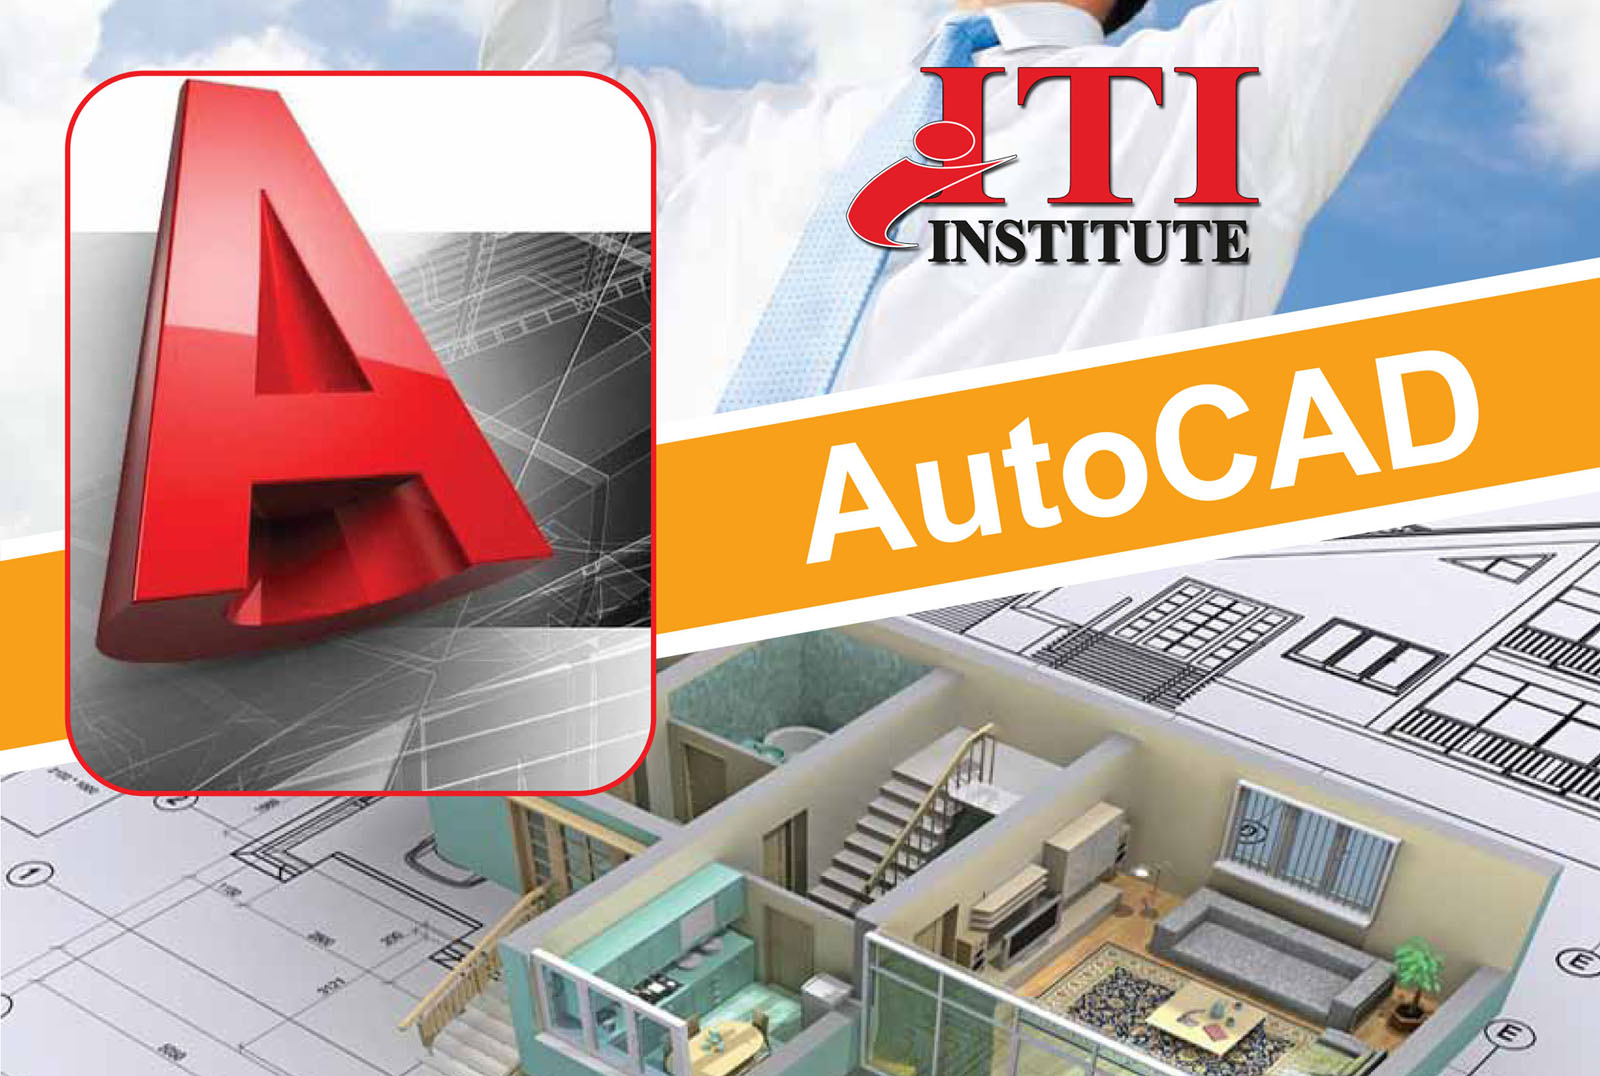 AutoCAD training in dubai